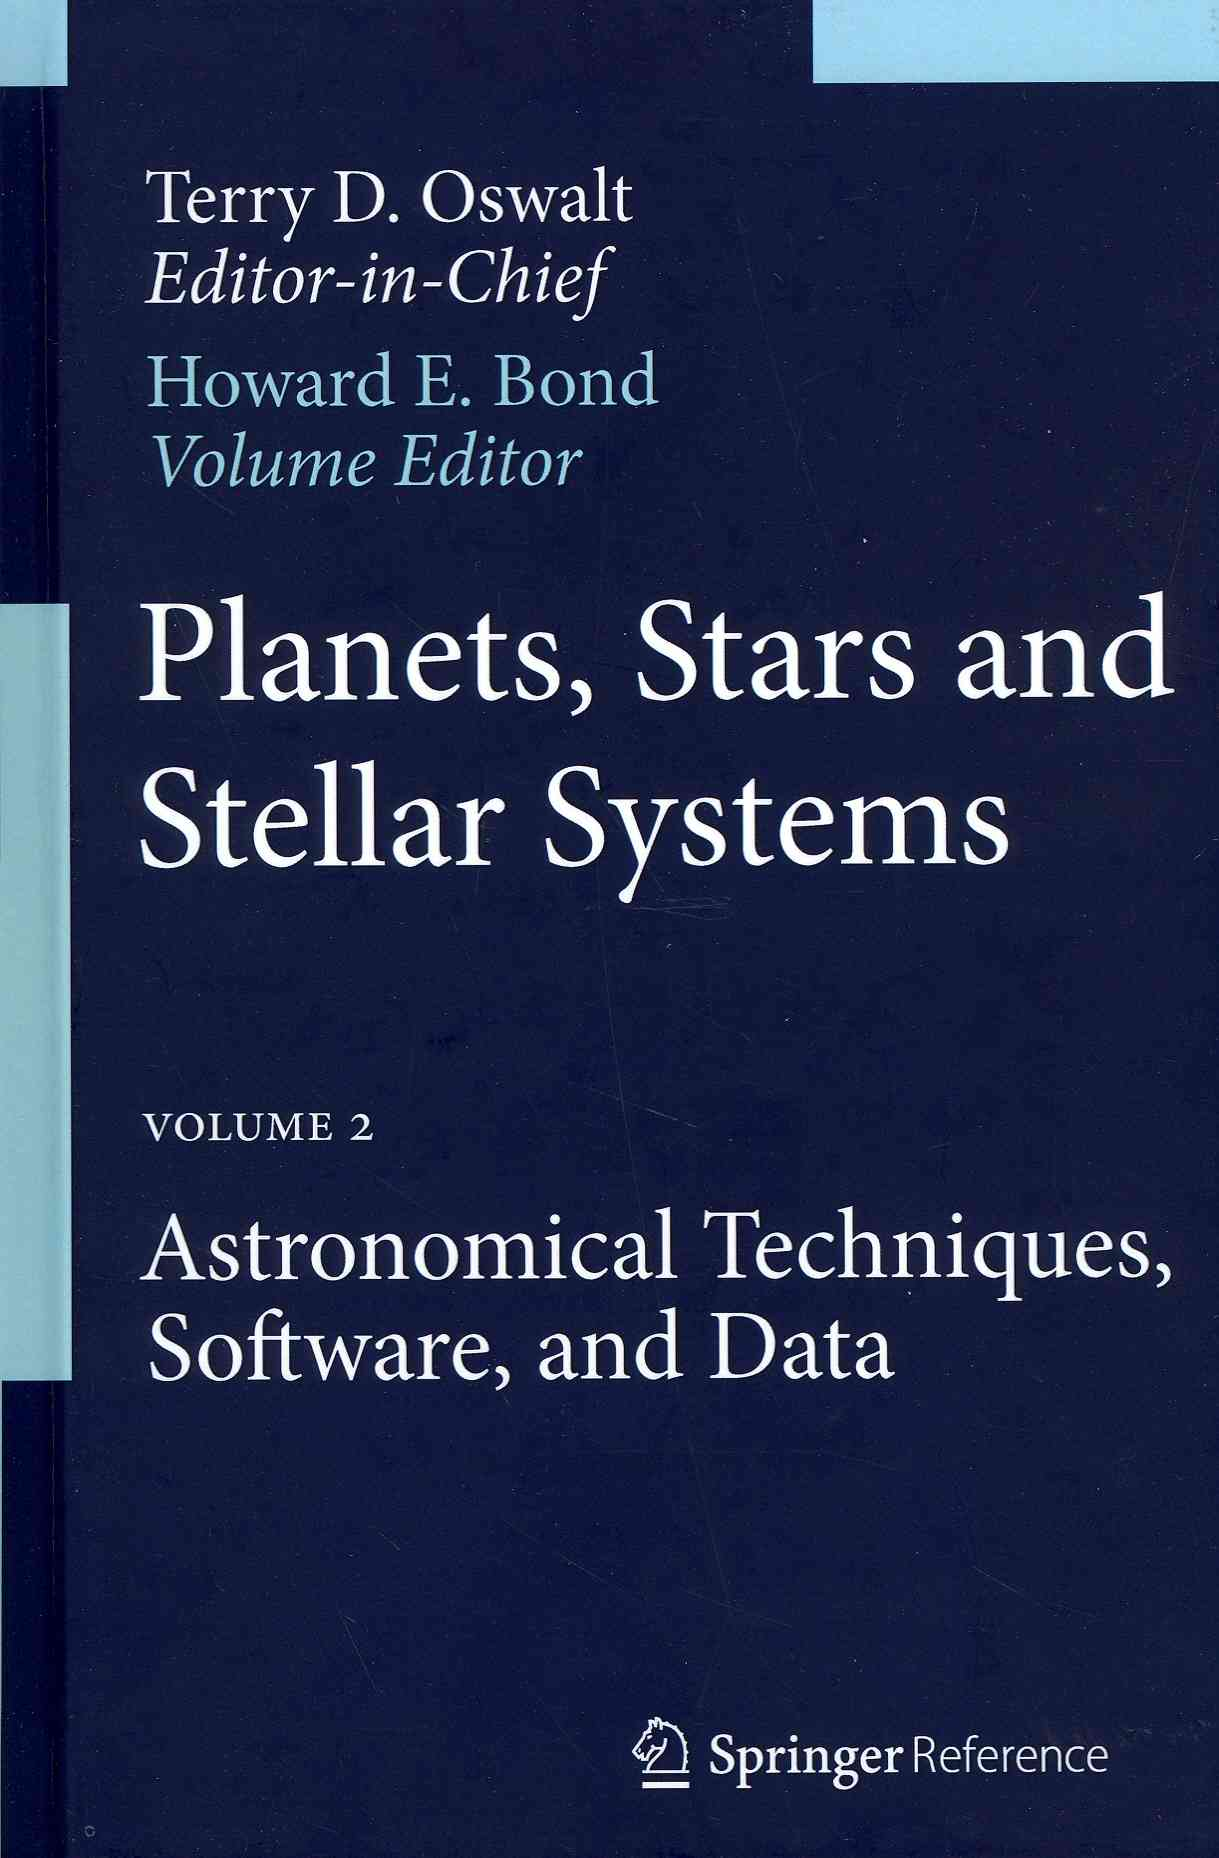 Astronomical Techniques, Software, and Data By Bond, Howard E. (EDT)/ Oswalt, T. D. (EDT)